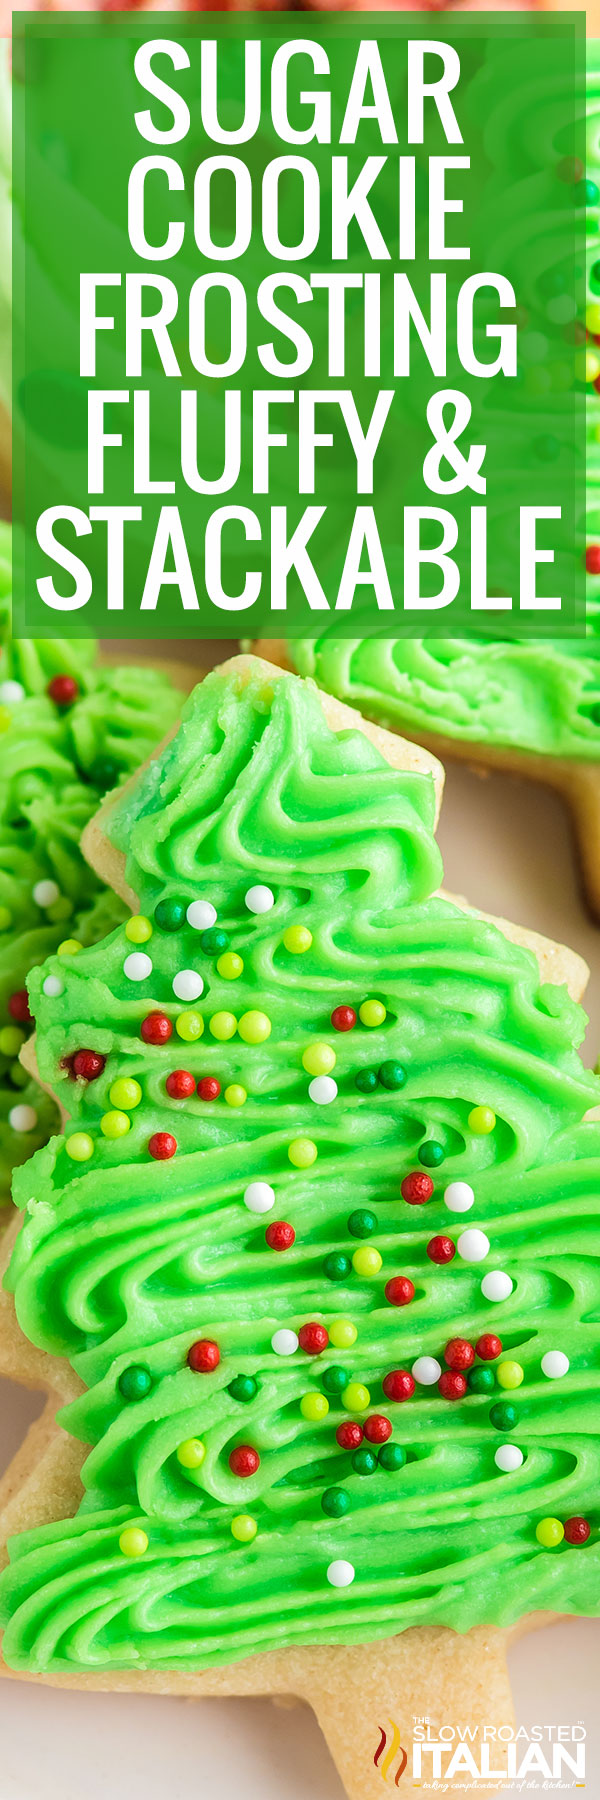 Title text (shown in a stack): Sugar Cookie Frosting (Fluffy & Stackable)